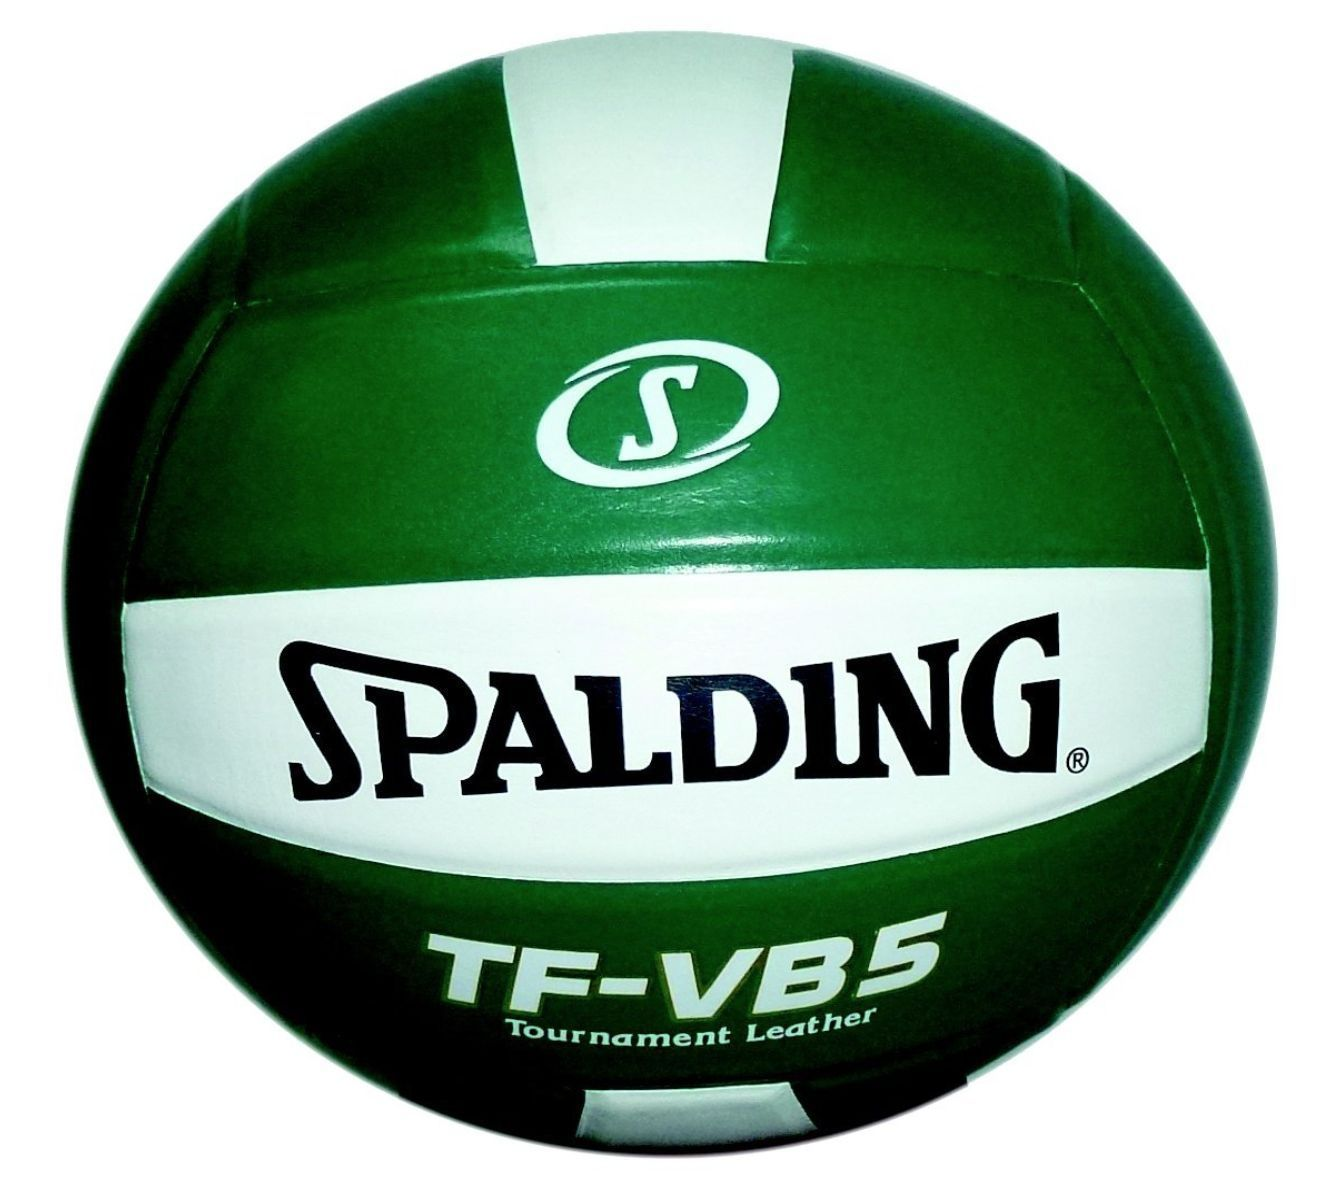 Volleyballs 159132 Spalding Volleyball Tf Vb5 Nfhs Approved Competition Nfhs Green And White Buy It Now Only 34 79 On Eba Volleyballs Spalding Volleyball